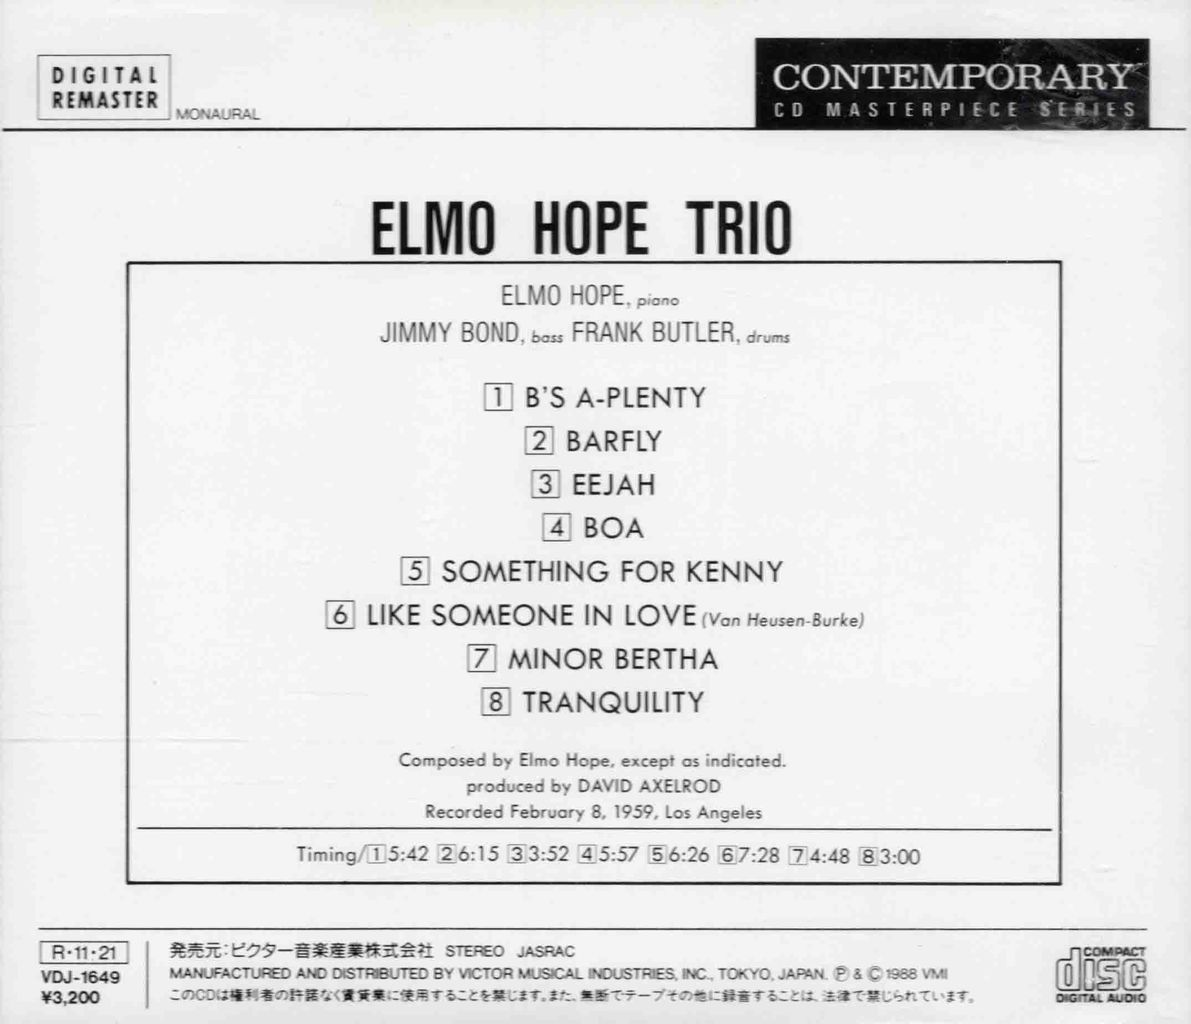 ELMO HOPE TRIO-2